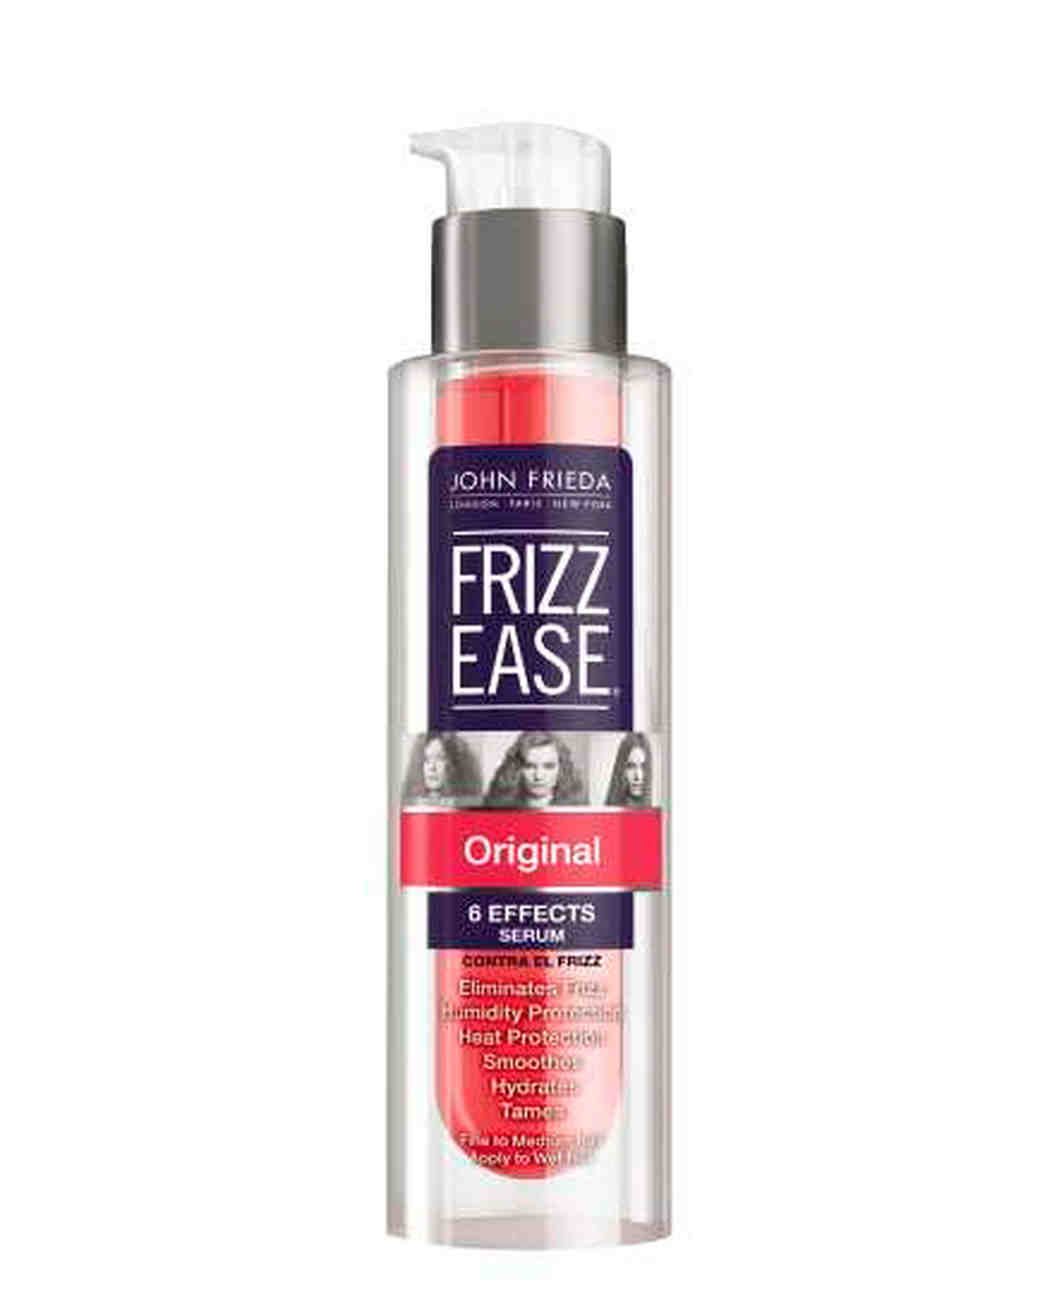 john-frieda-frizz-ease-original-6-effects-serum-0314.jpg